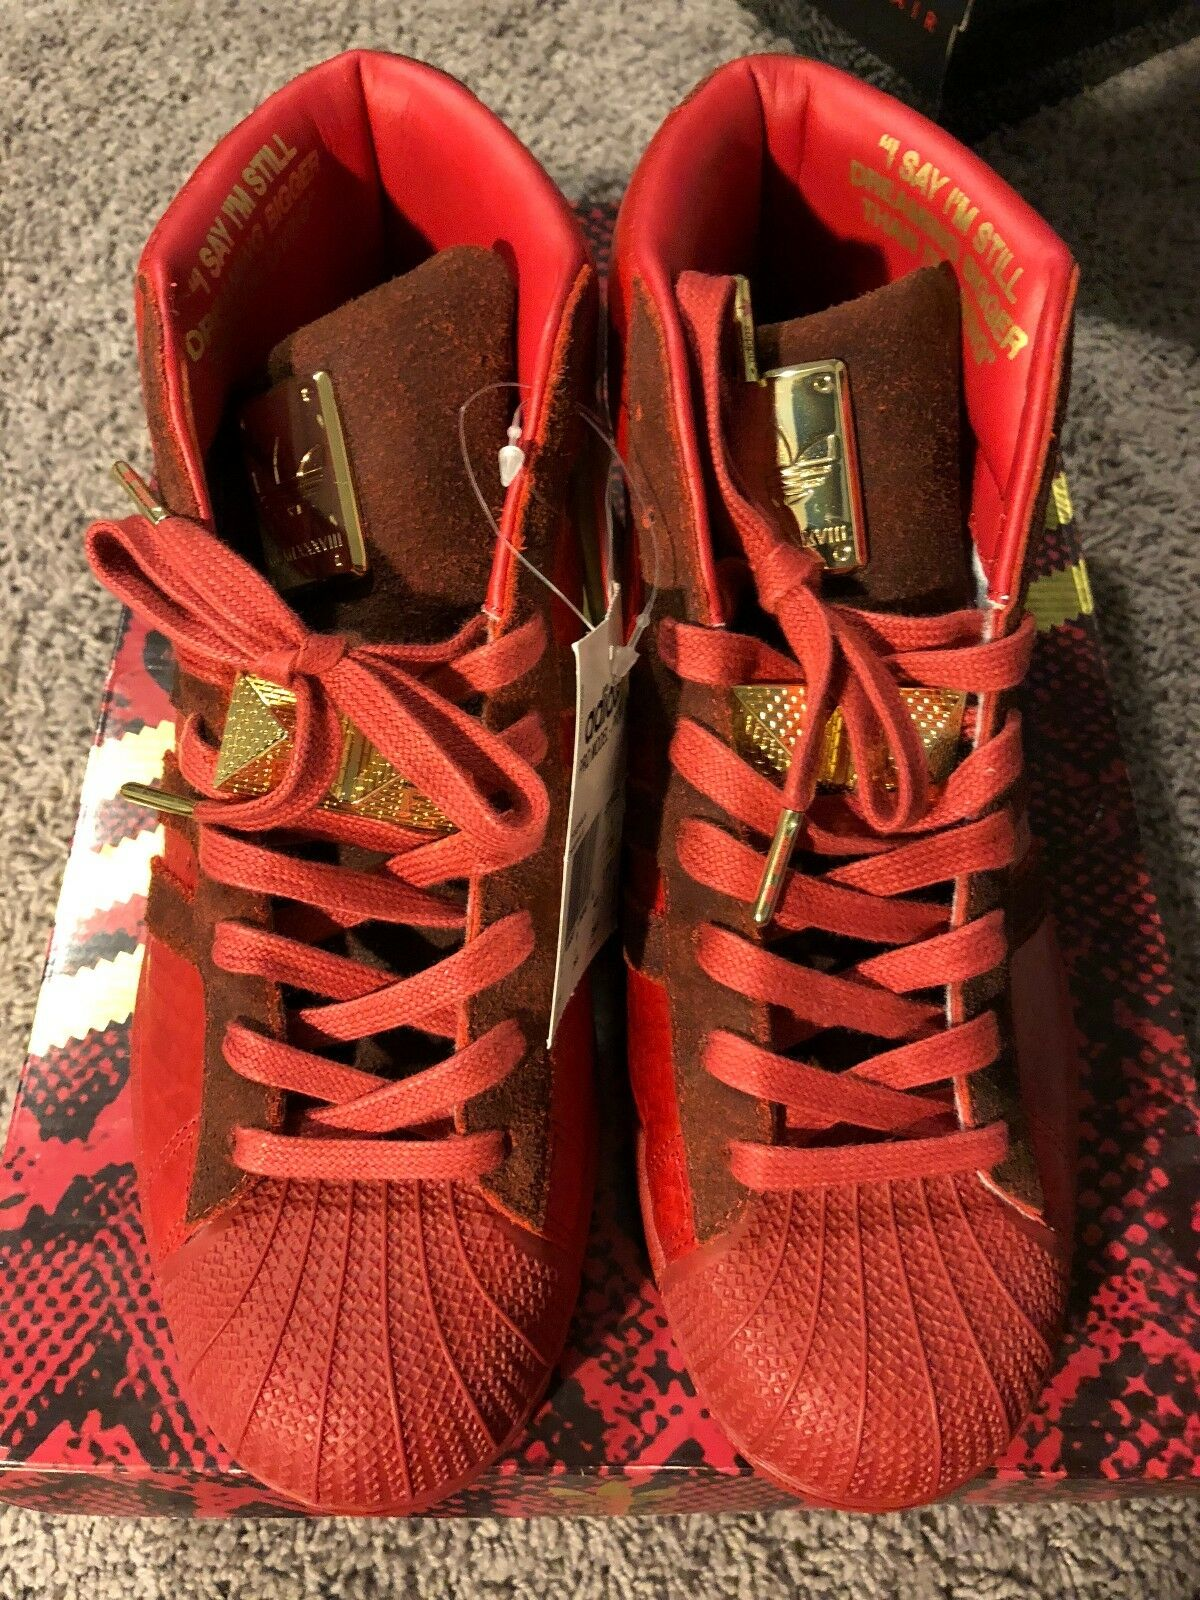 Adidas Original x Big Rojo Sean Detroit jugadores Pro Model Rojo Big comodo a6c2c6